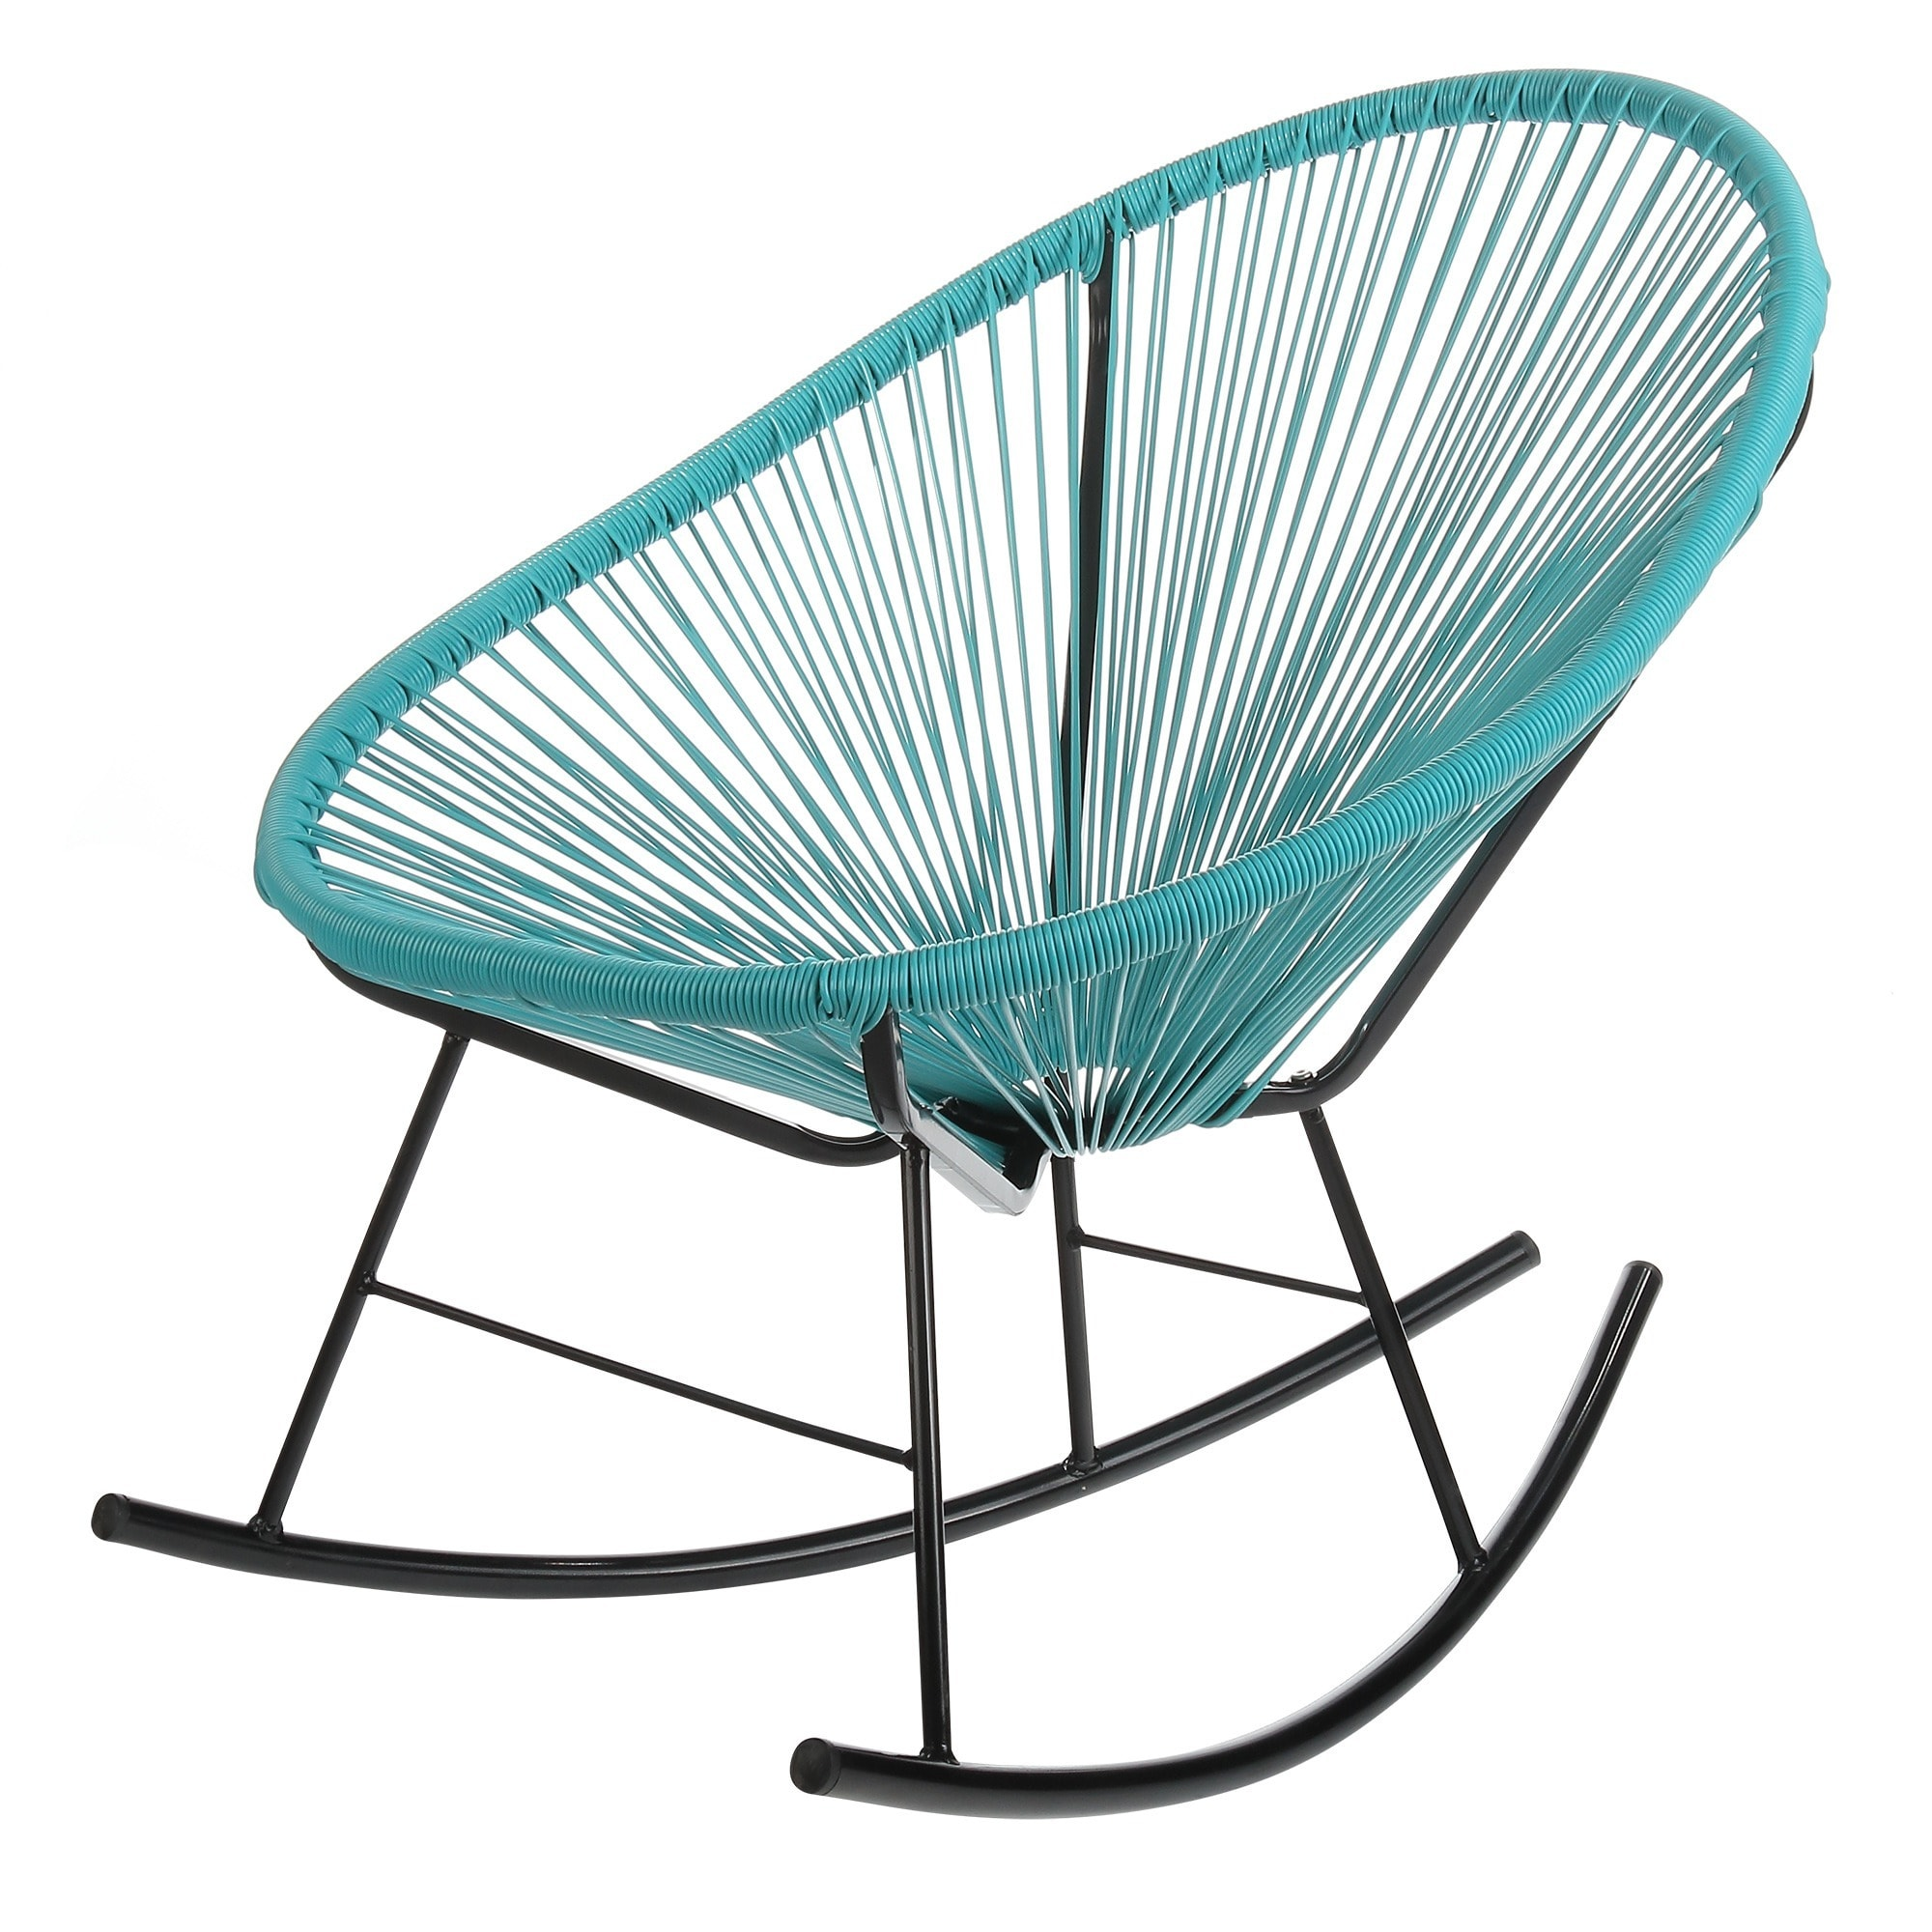 Gentil Shop Handmade Bold Acapulco Rocking Chair, Indoor Or Outdoor, Bright Blue  (China)   On Sale   Free Shipping Today   Overstock.com   10493150